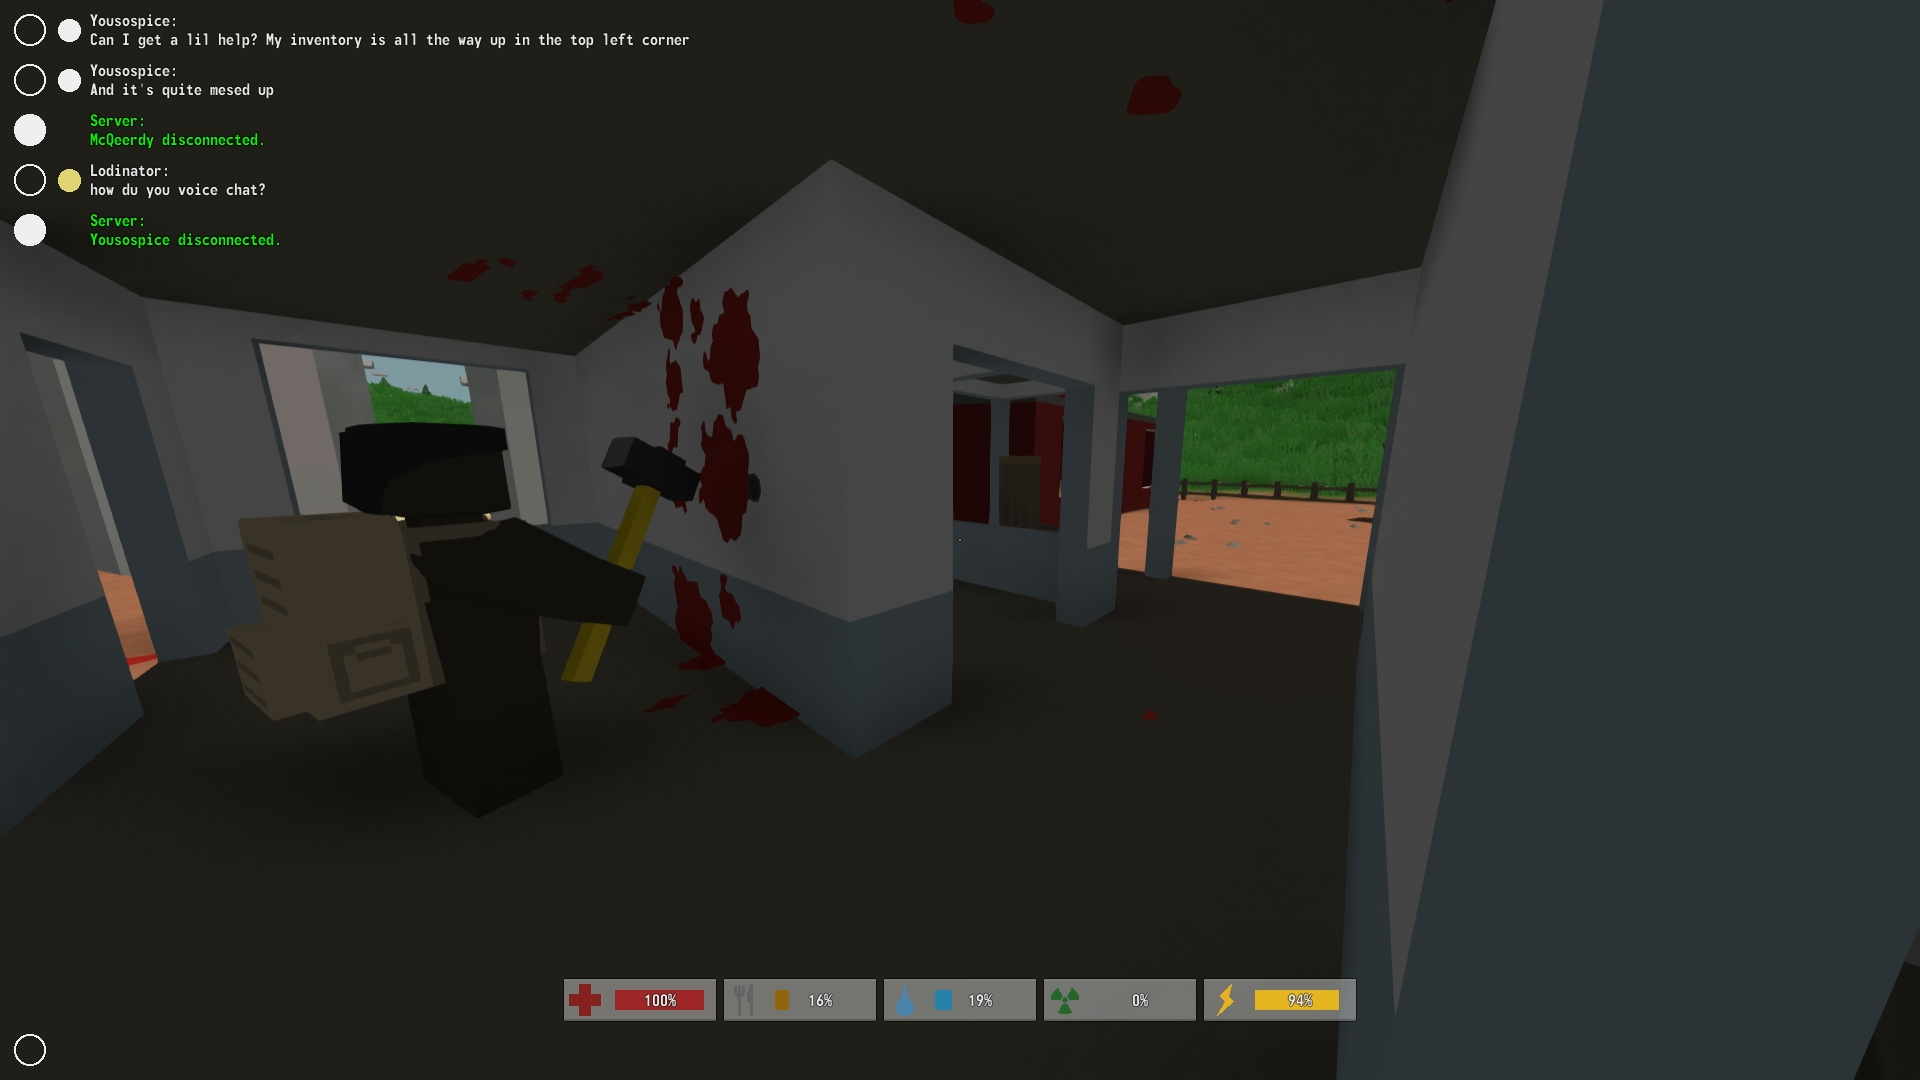 Sledge Hammer Maniac In The New Unturned Zombie Survival Game That S Free To Play On Steam Unturned Check Out My Survival Games Zombie Survival Sledgehammer